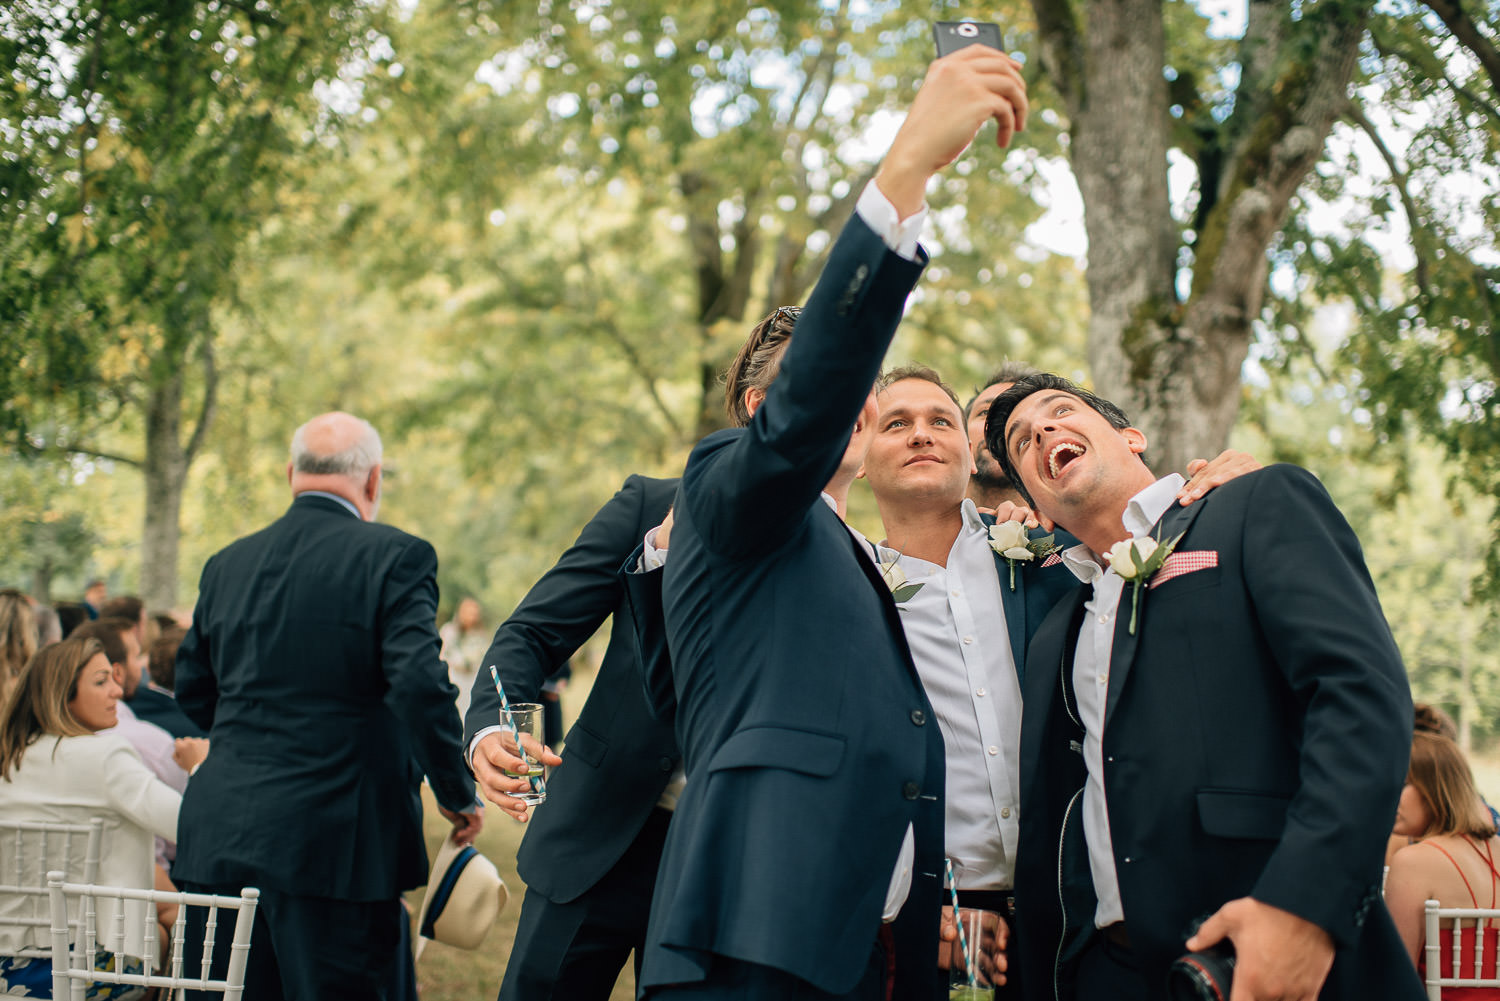 Wedding selfie in chateau de la bourlie wedding by destination wedding photographer the shannons photography